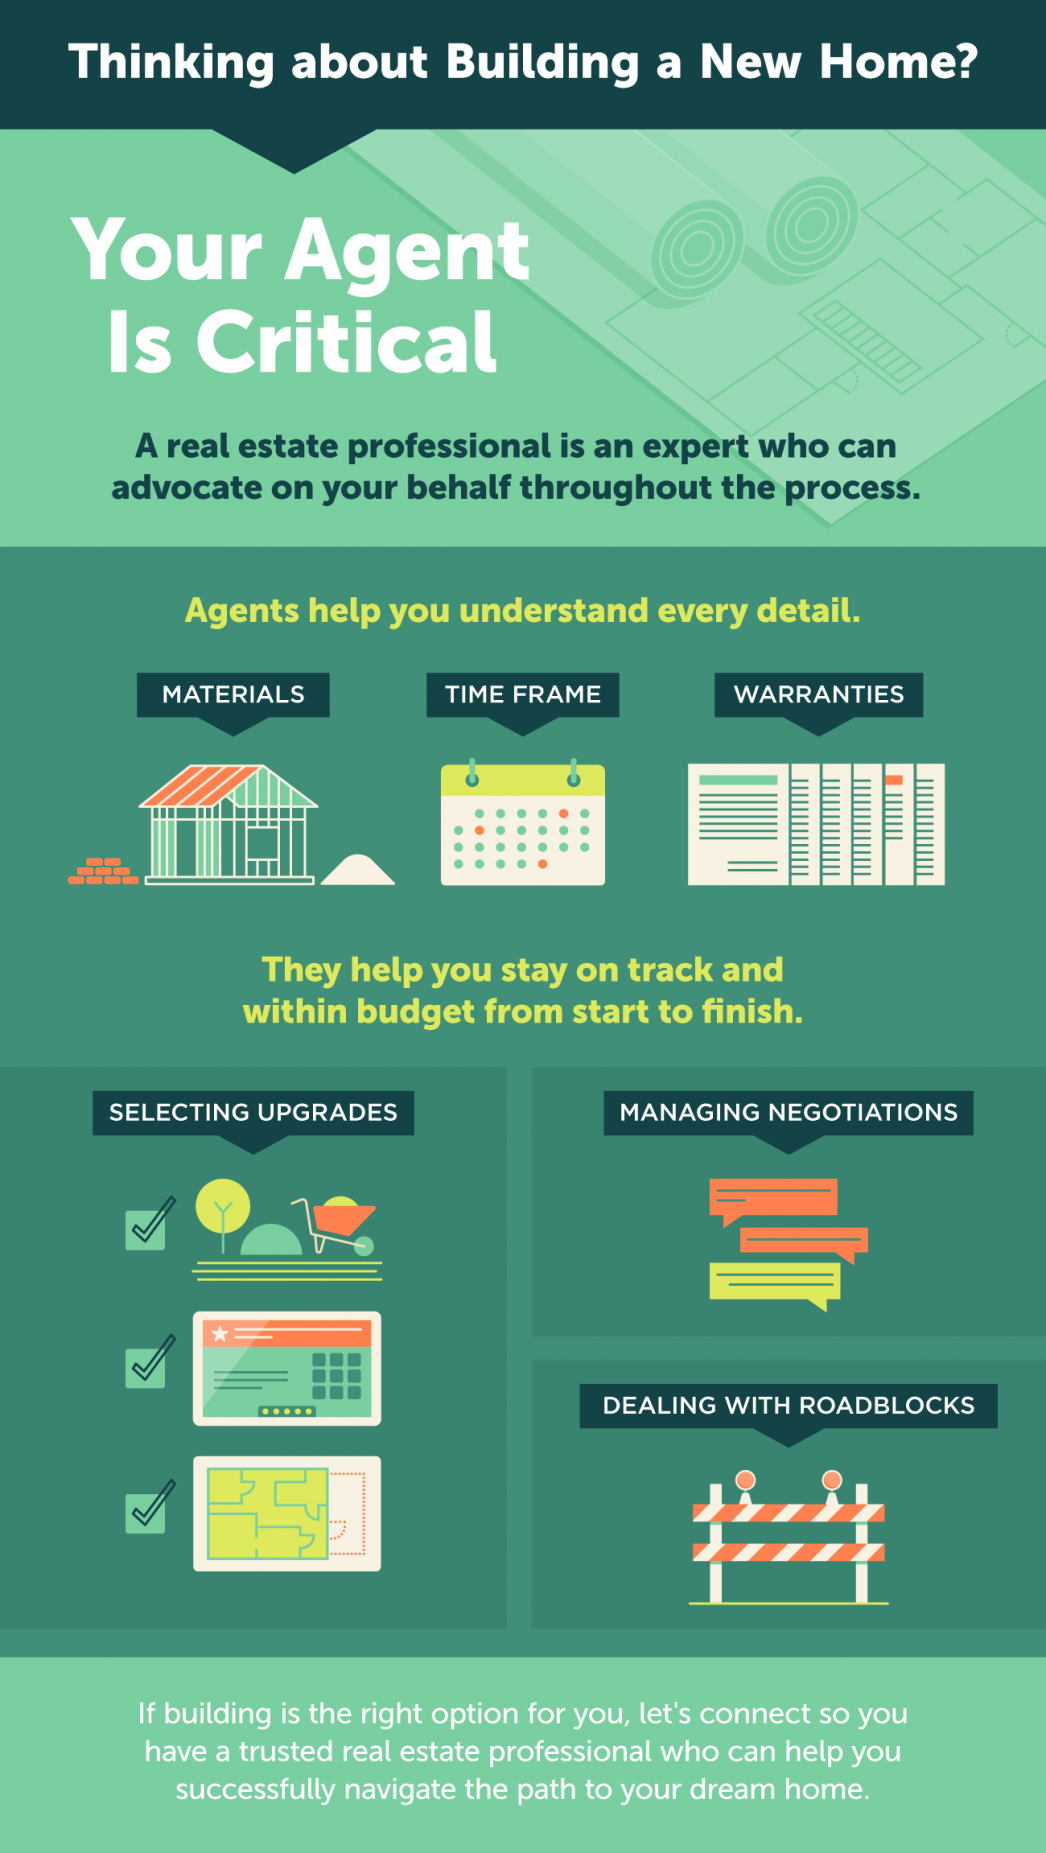 Thinking about Building a New Home? Your Agent Is Critical. [INFOGRAPHIC]   MyKCM